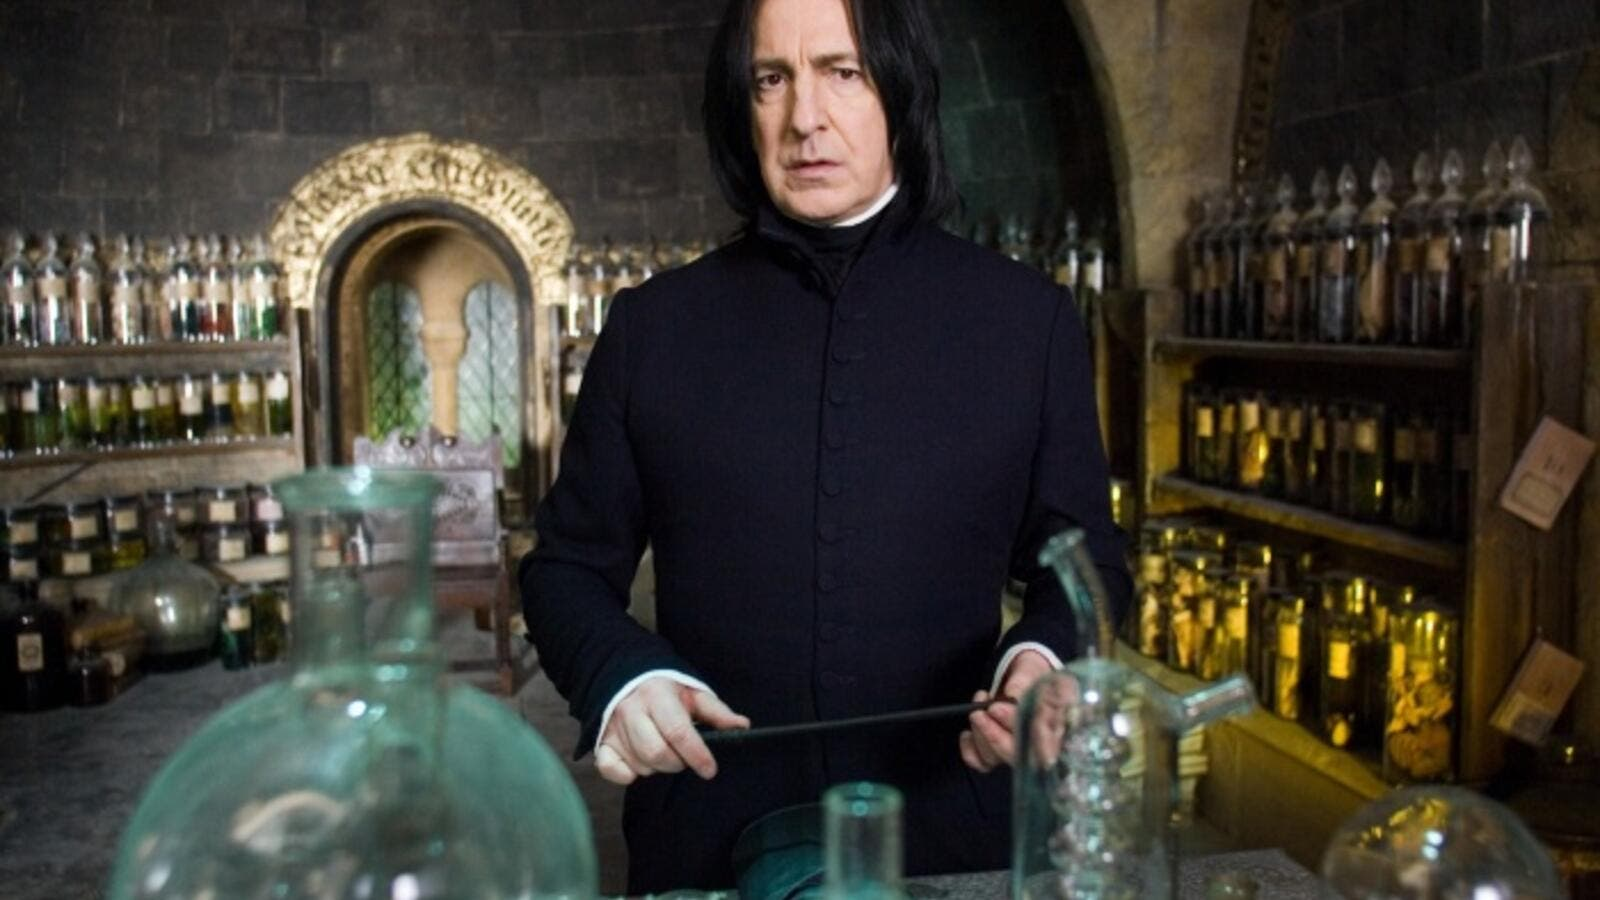 Rickman was most famous for his role as Professor Snape in the Harry Potter films. (Harrypotter.wikia.com)